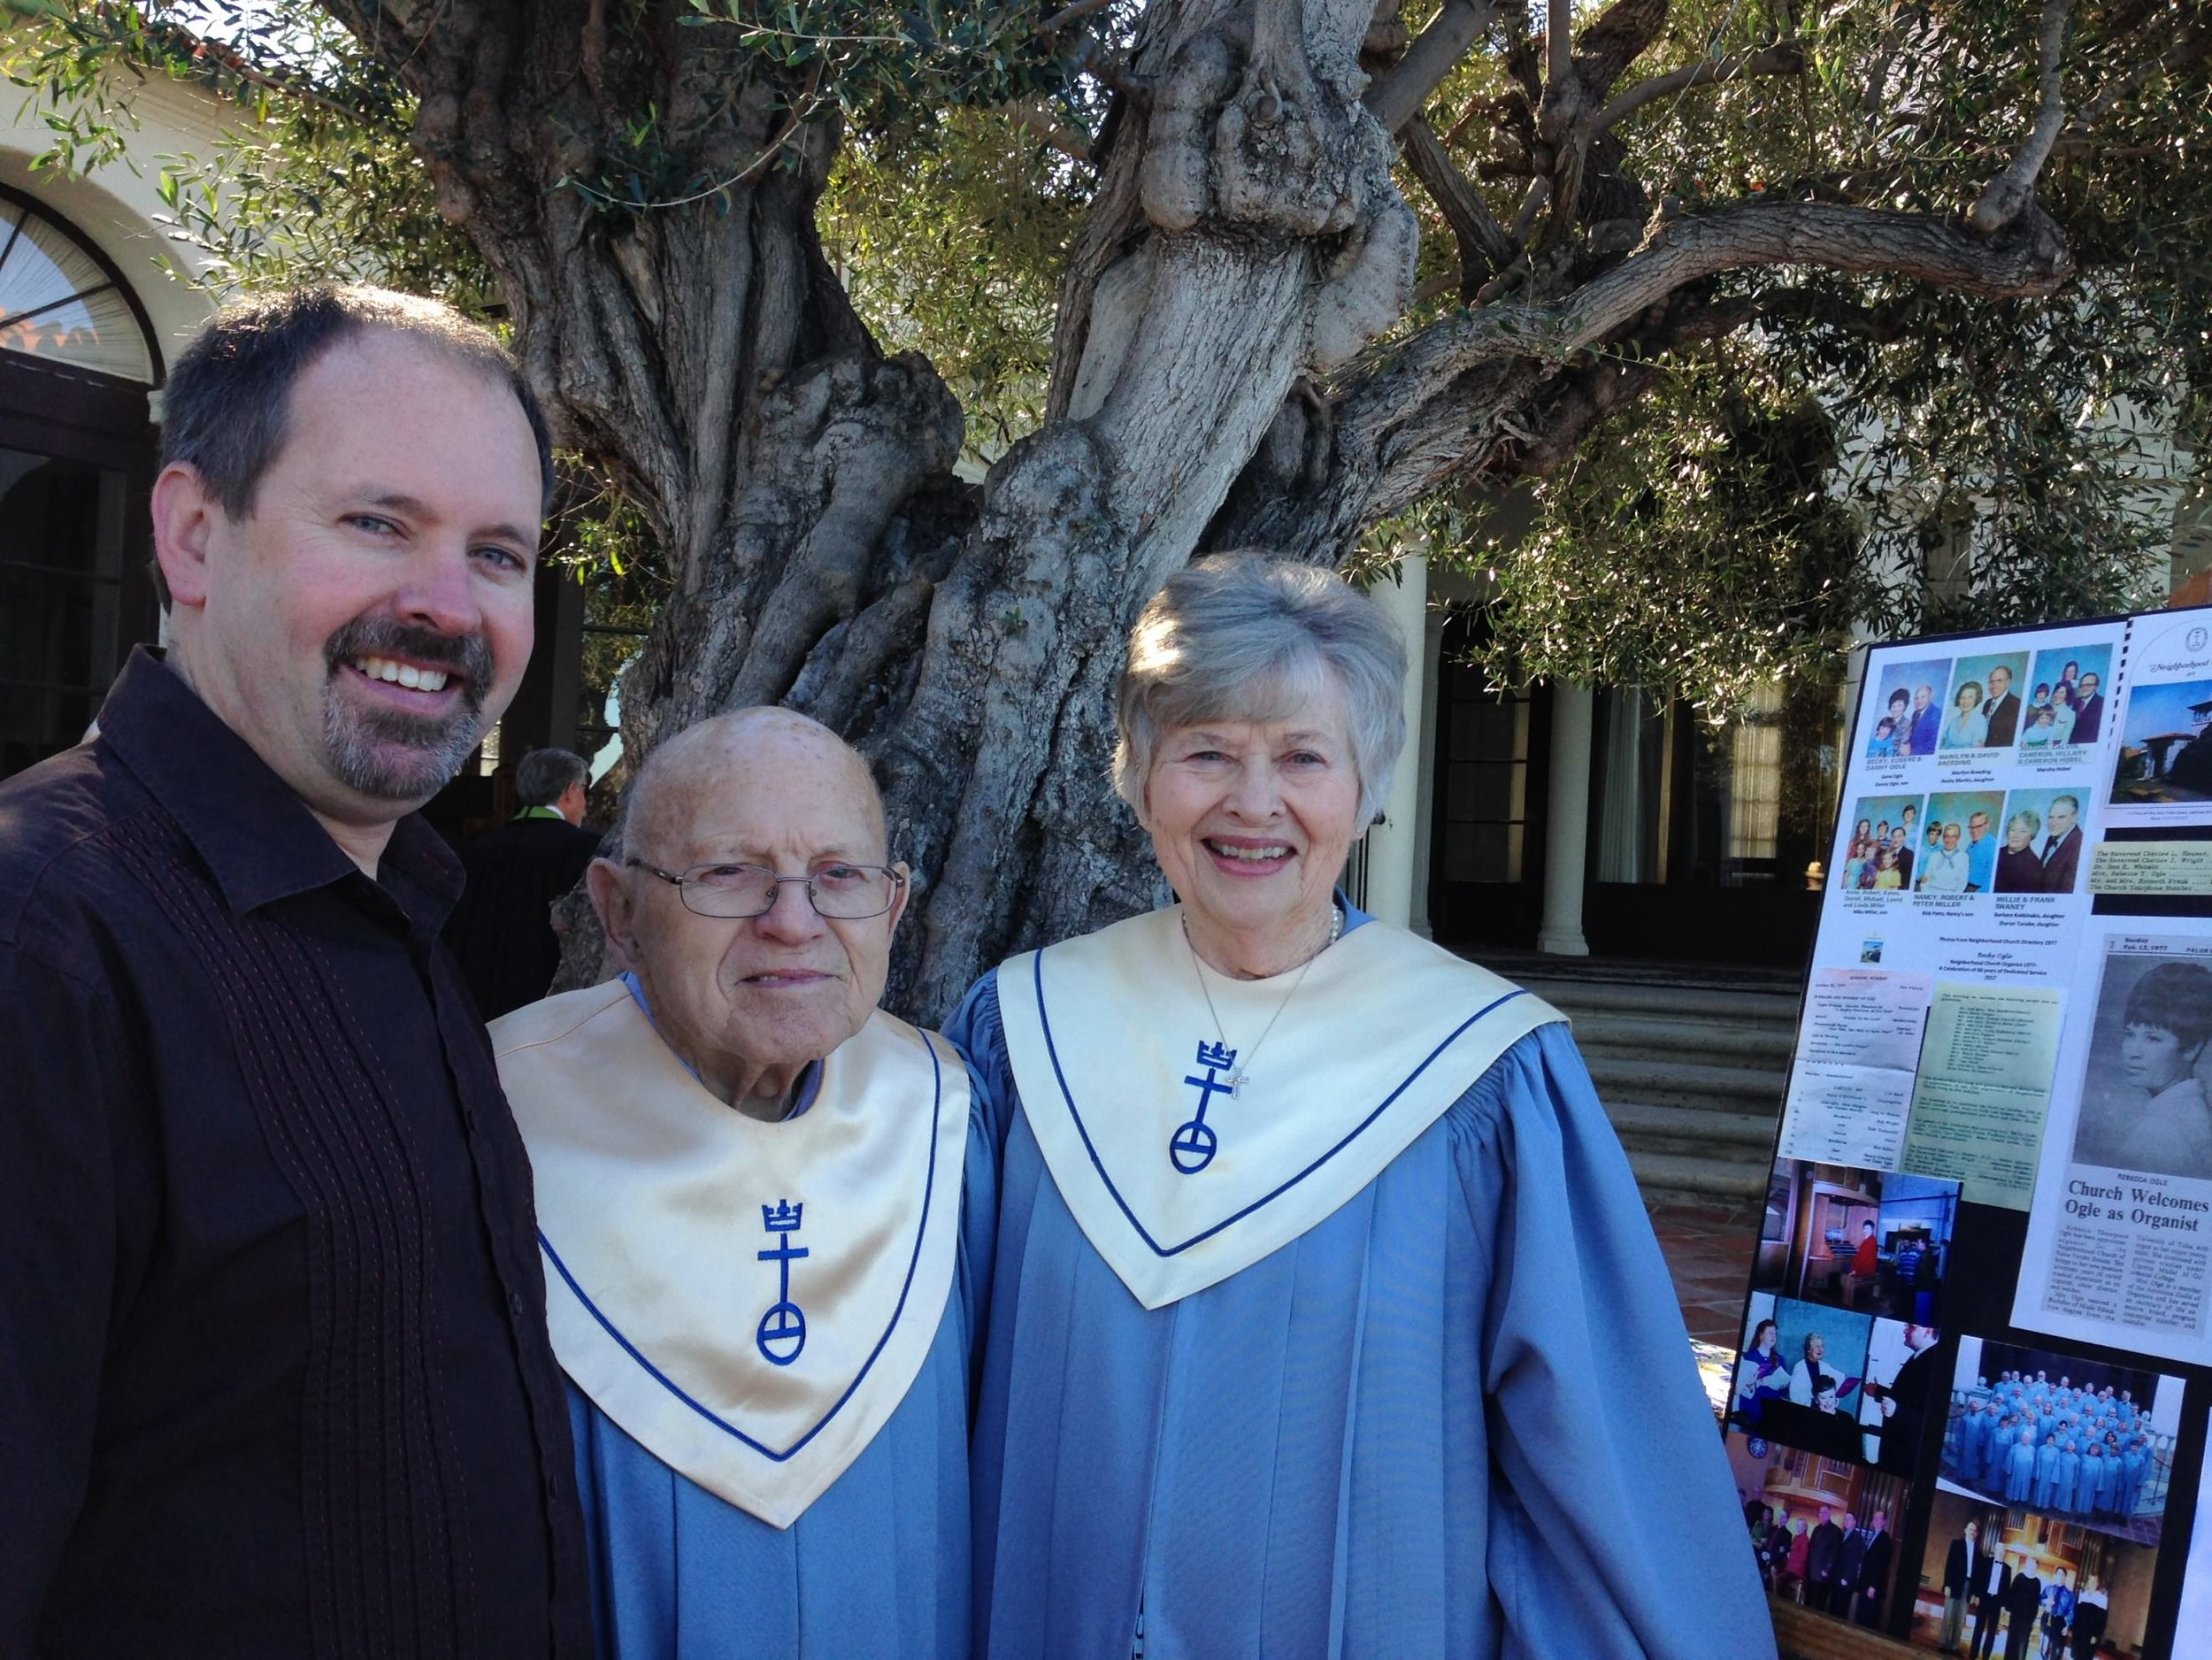 Danny, Becky and Gene at the church reception honoring Becky in February, 2017